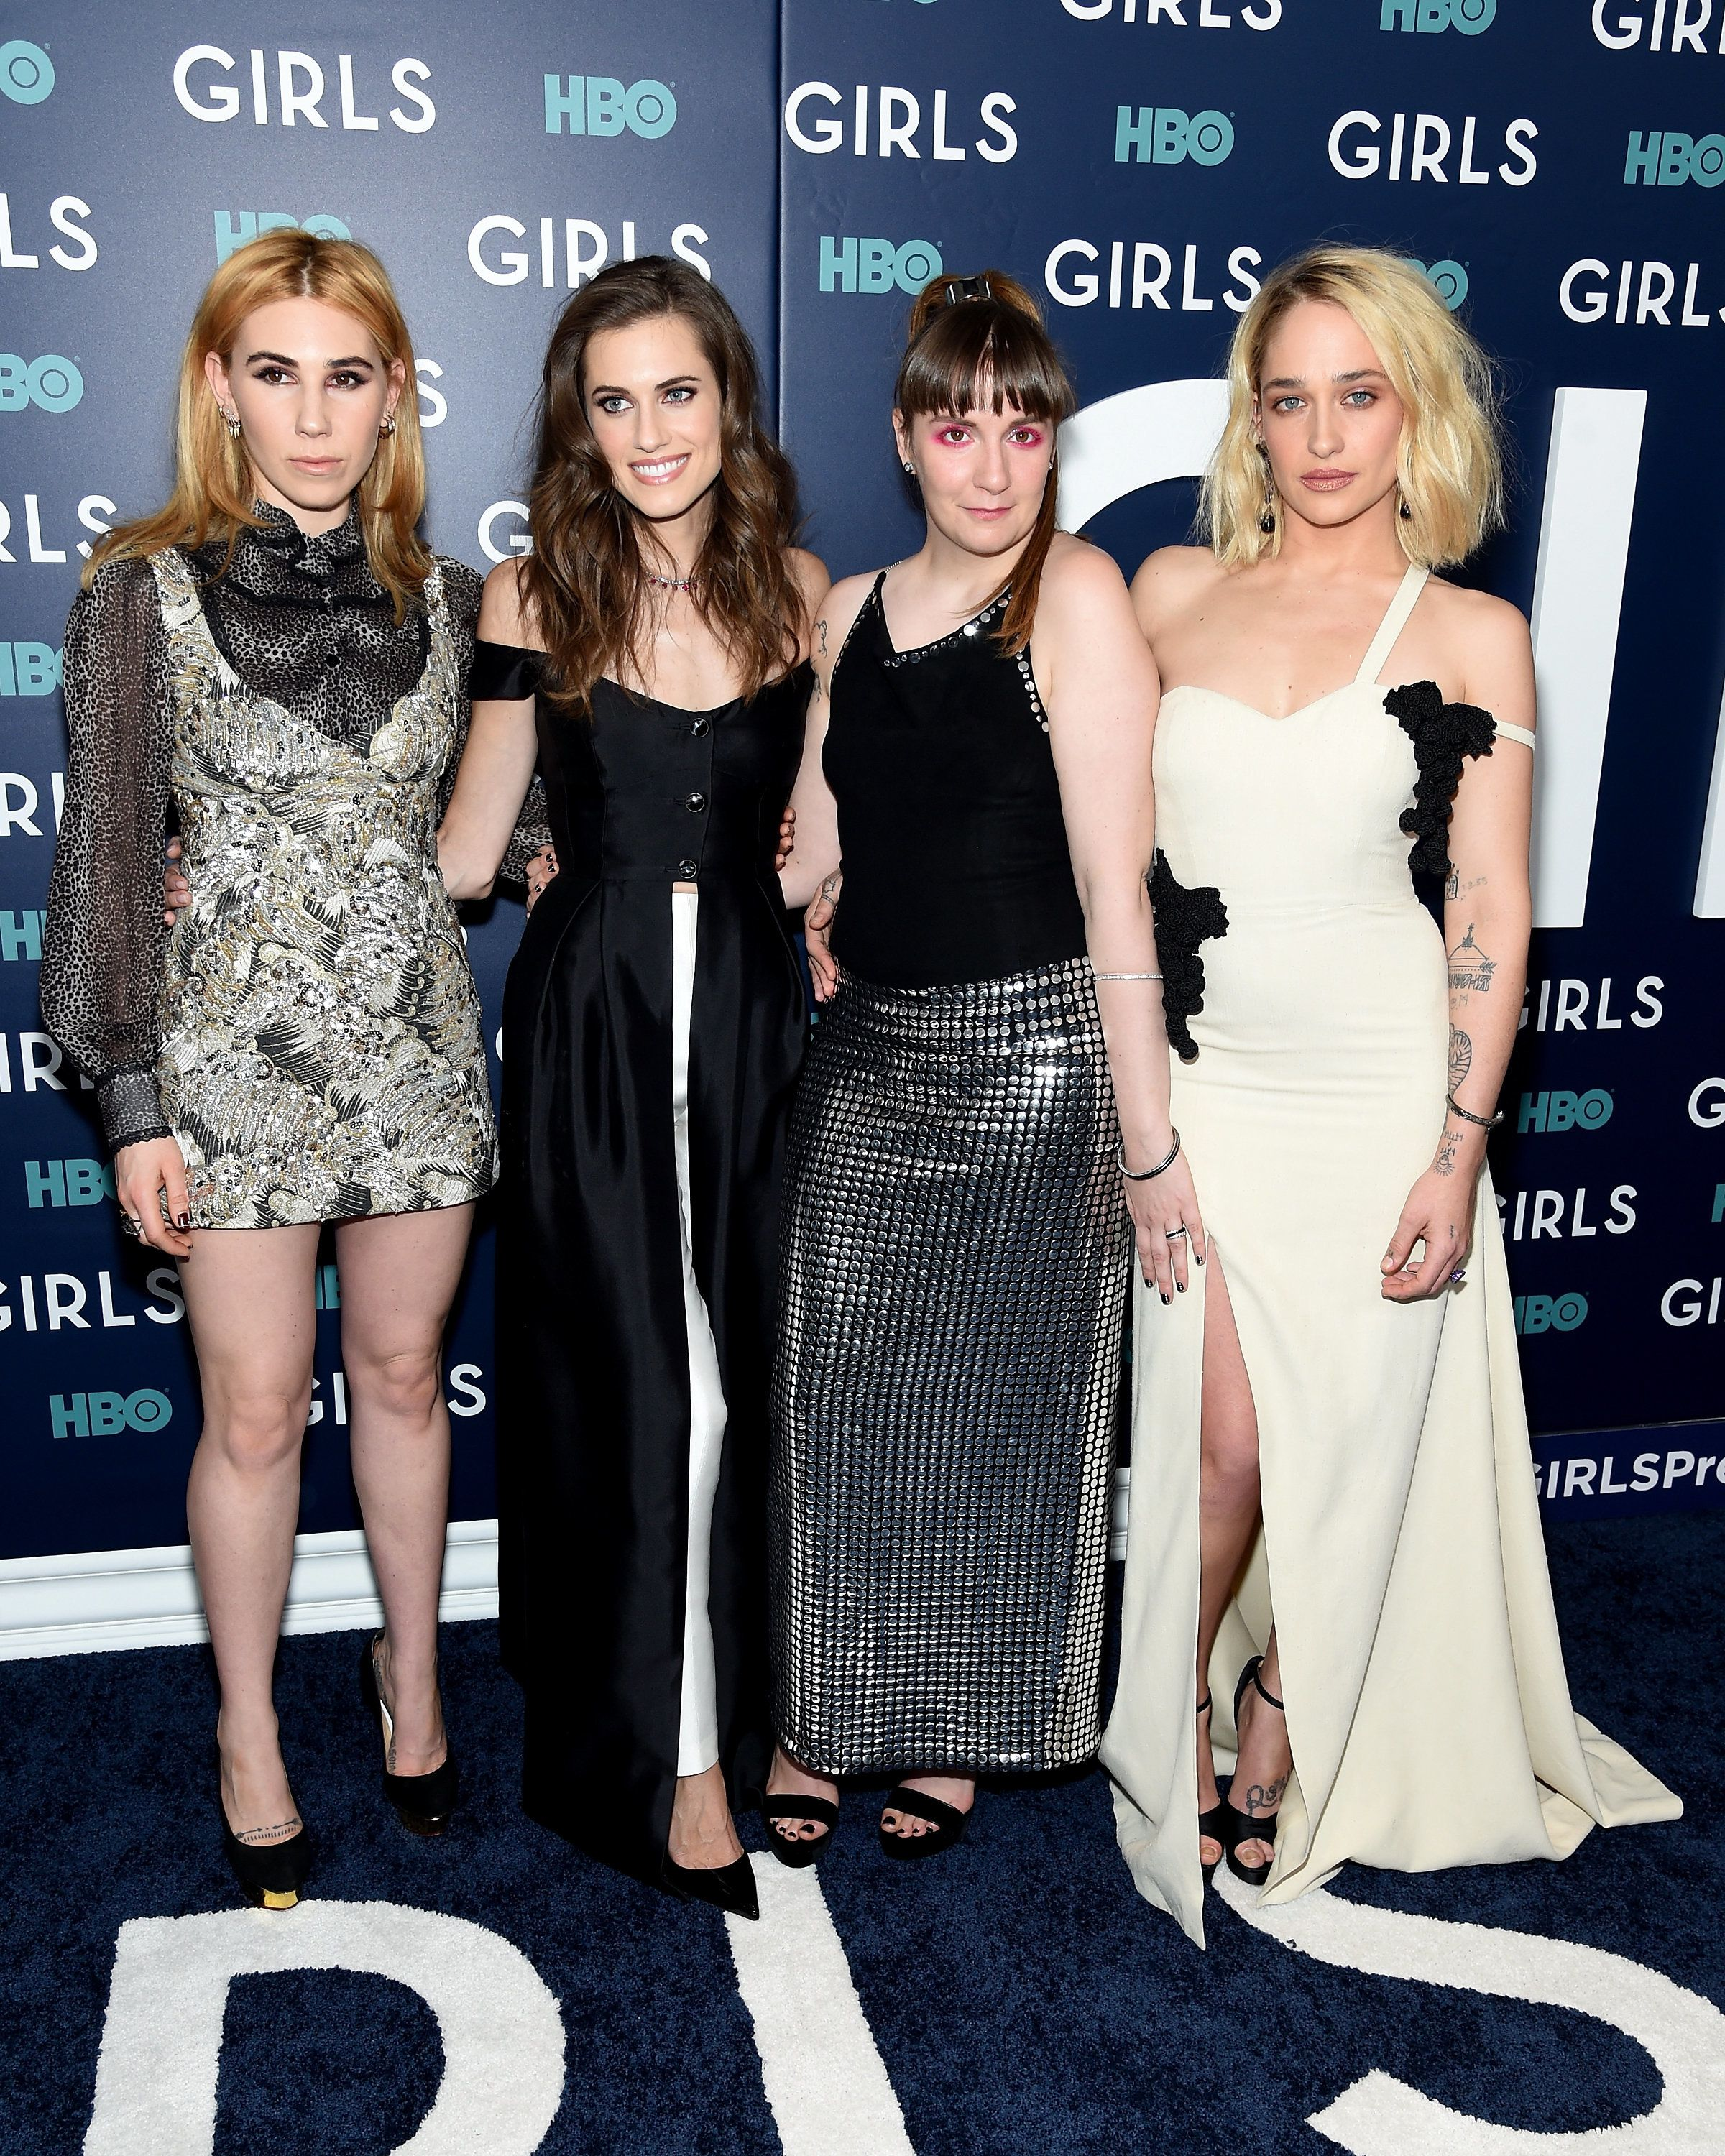 NEW YORK, NY - FEBRUARY 02:  (L-R)  Zosia Mamet, Allison Williams, Lena Dunham and Jemima Kirke attend The New York Premiere Of The Sixth & Final Season Of 'Girls' at Alice Tully Hall, Lincoln Center on February 2, 2017 in New York City.  (Photo by Jamie McCarthy/Getty Images)